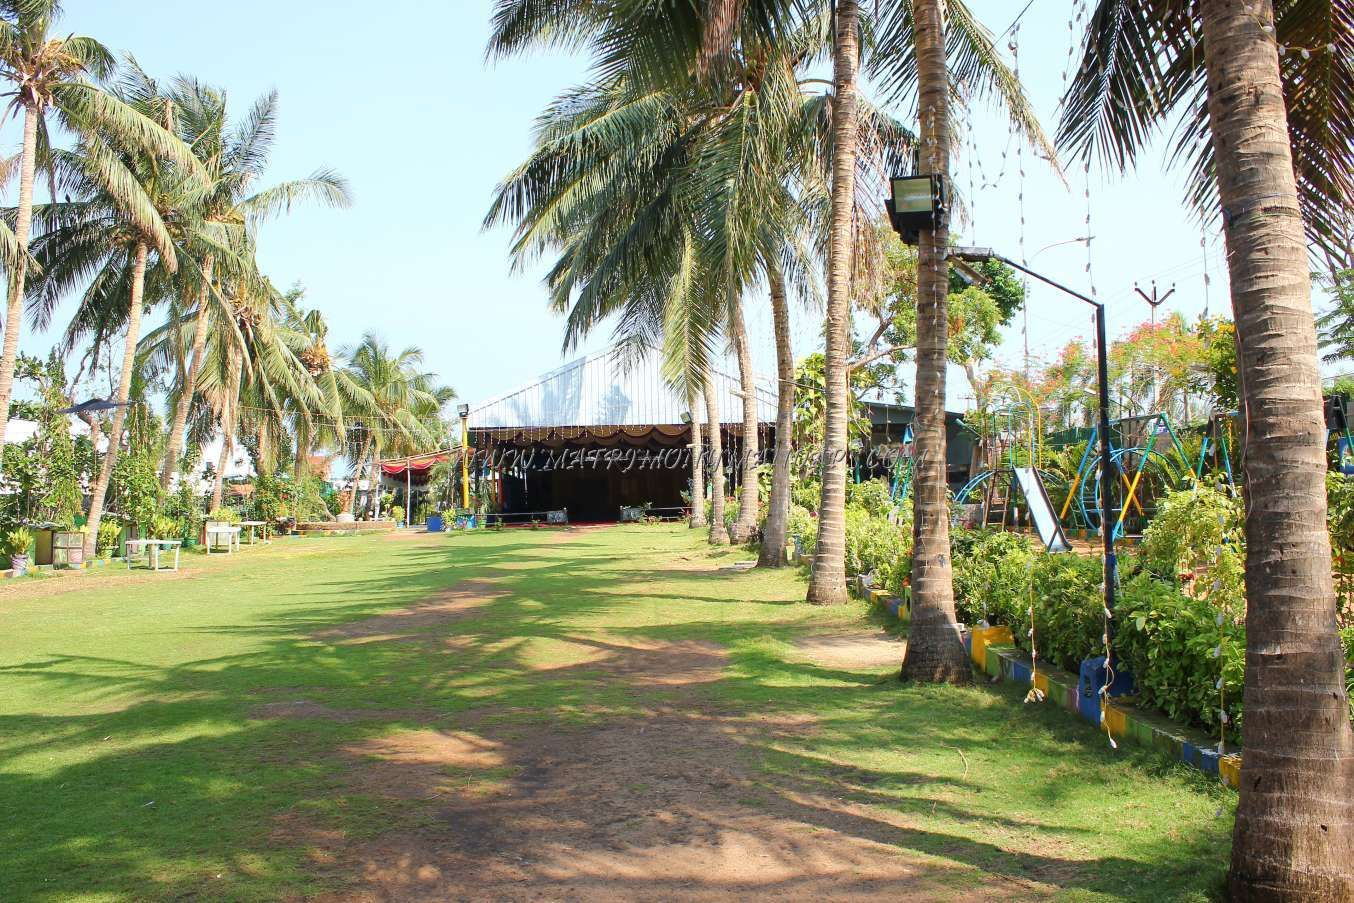 Food Village Resort Ecr Chennai For Team Outing Activities Leading Event Management Companies In Chennai Event Companies In Chennai Corporate Event Organise Event Management Company Event Management Event Company